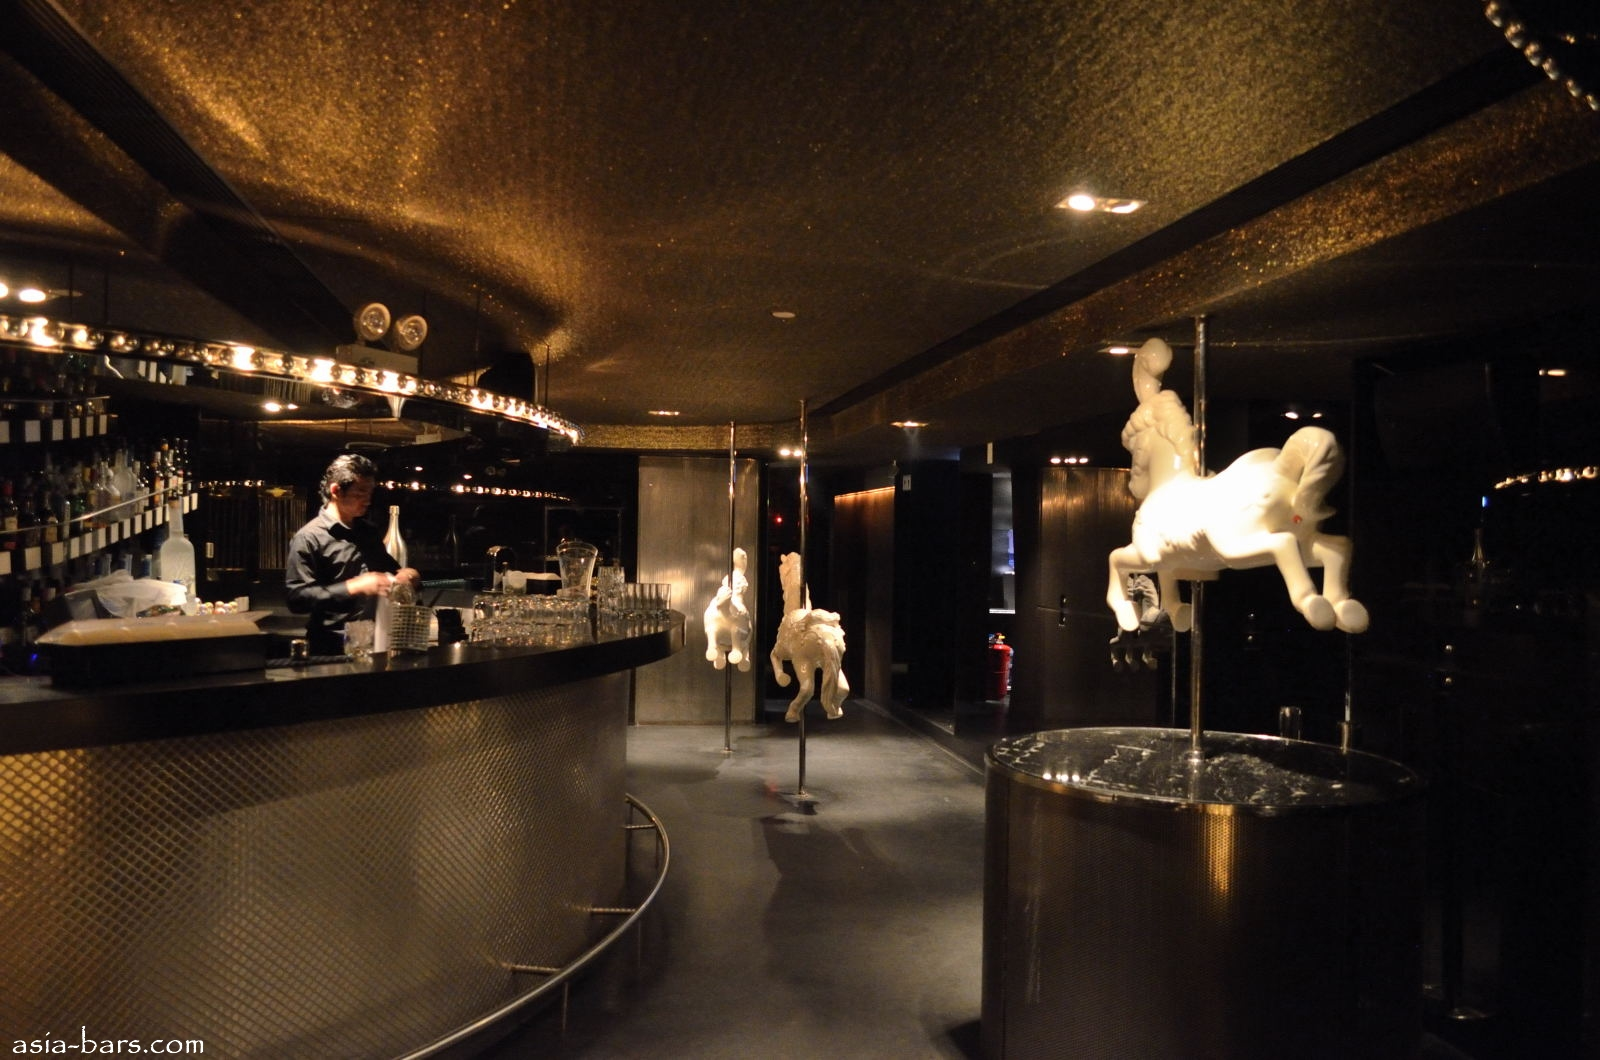 Volar Sleek Hip Hong Kong Nightclub And Lounge on Nightclub Interior Design